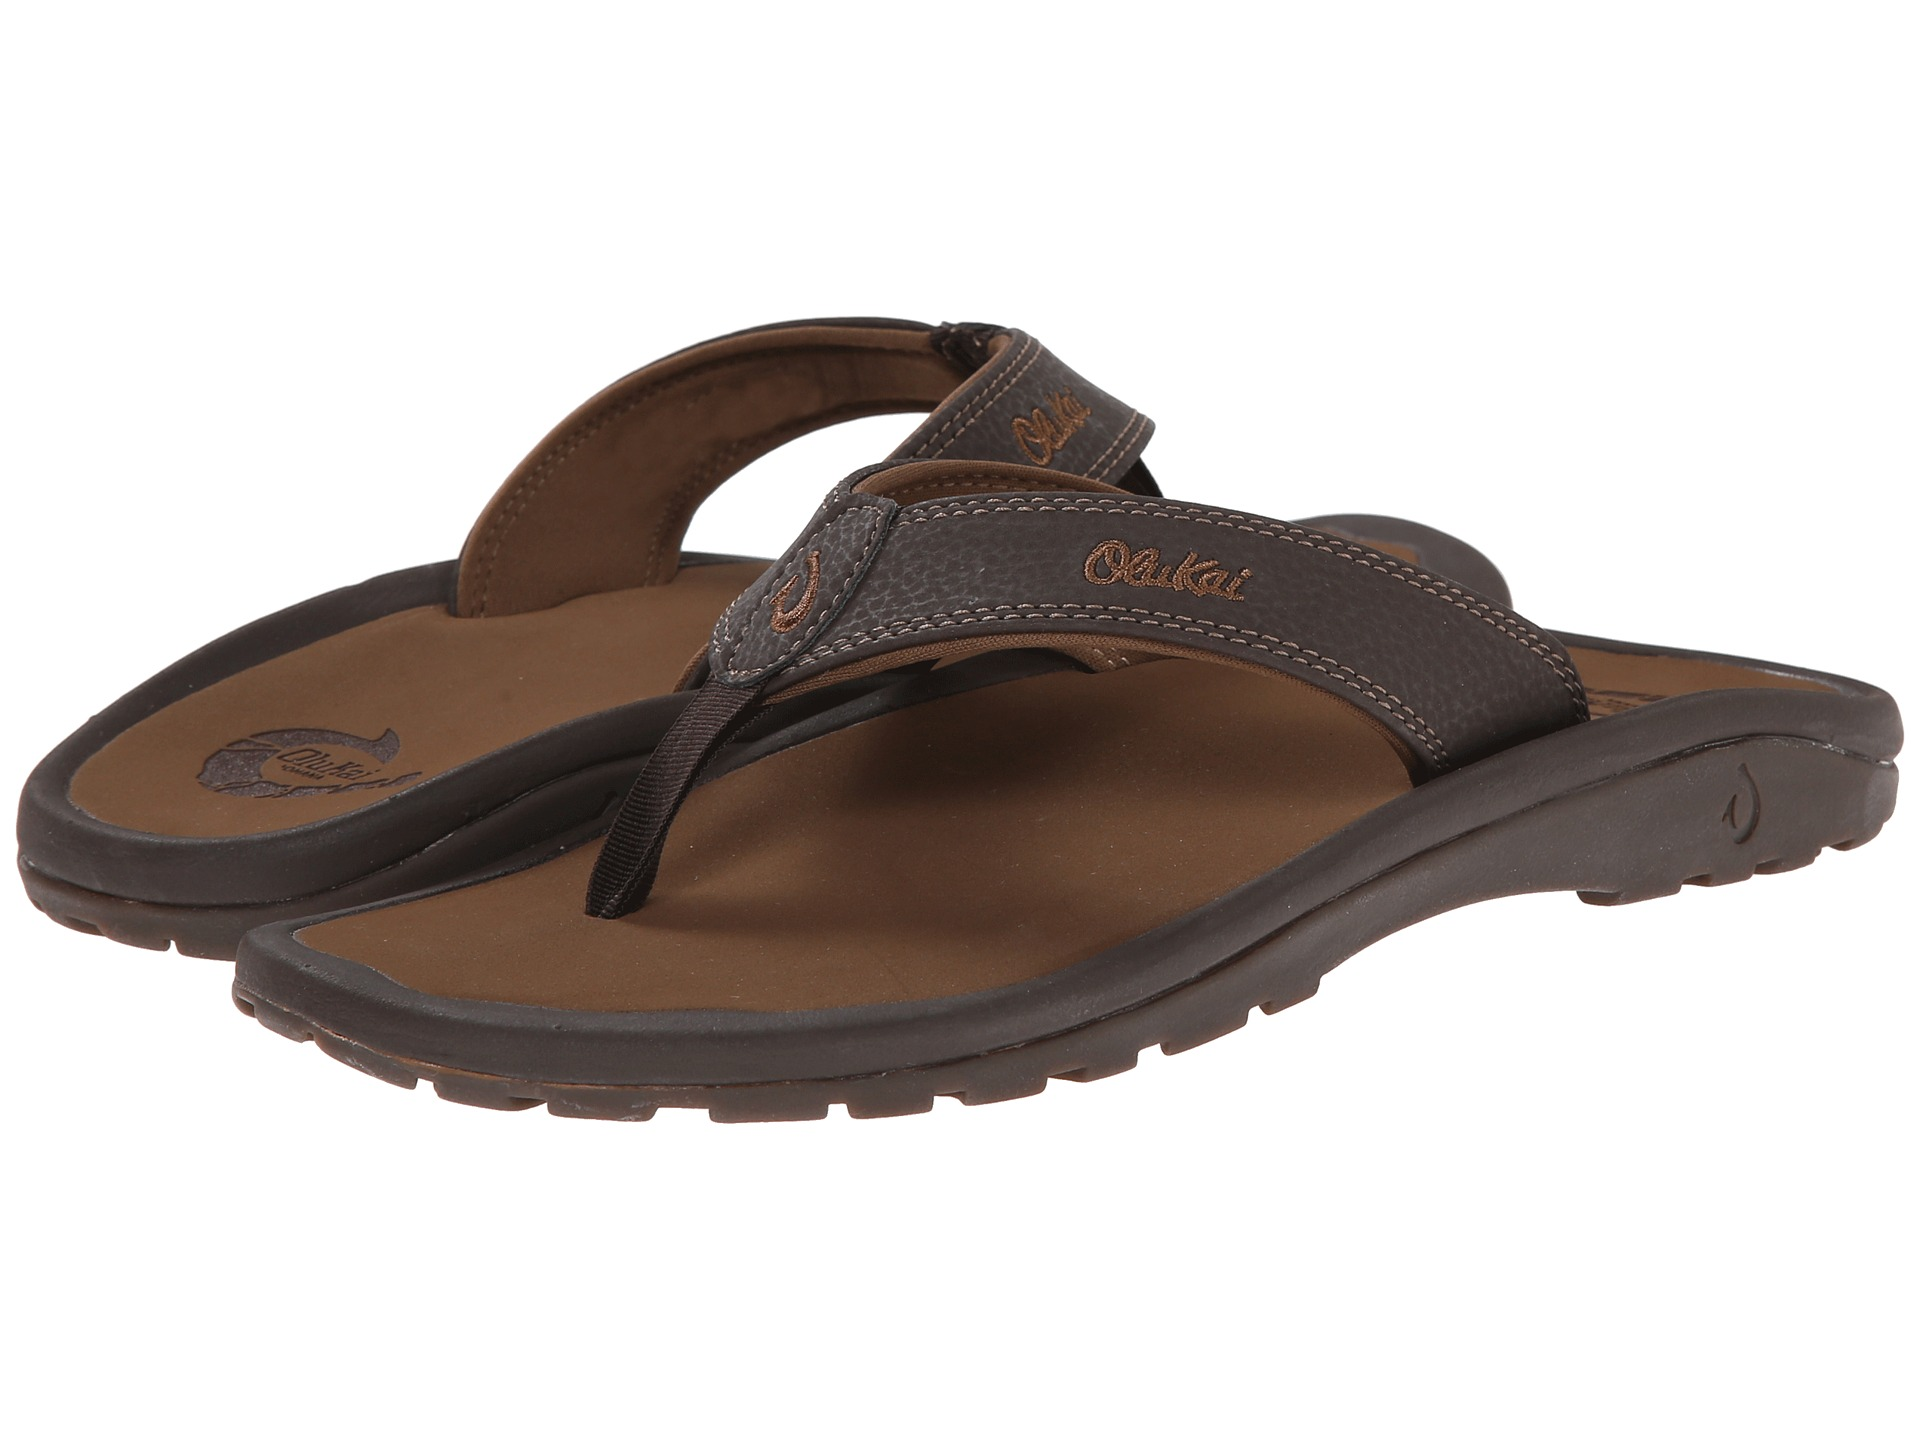 Kuru Shoes For Sale And Reviews